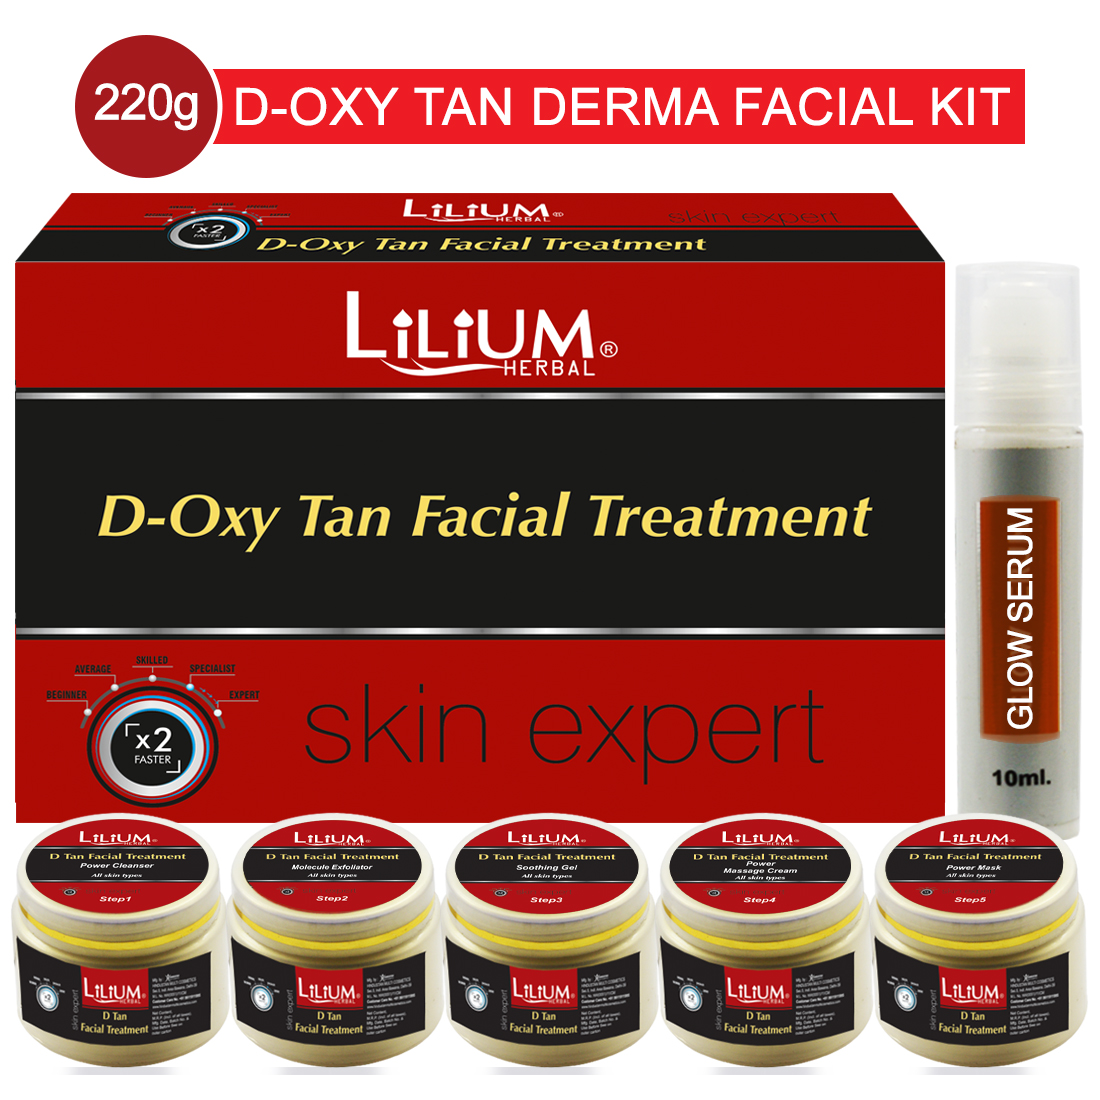 Lilium D-Oxy Tan Facial Treatment Skin Expert Facial Kit 220gm With 5in1 Face Massager & Skin Whitening Cream Pack of 3